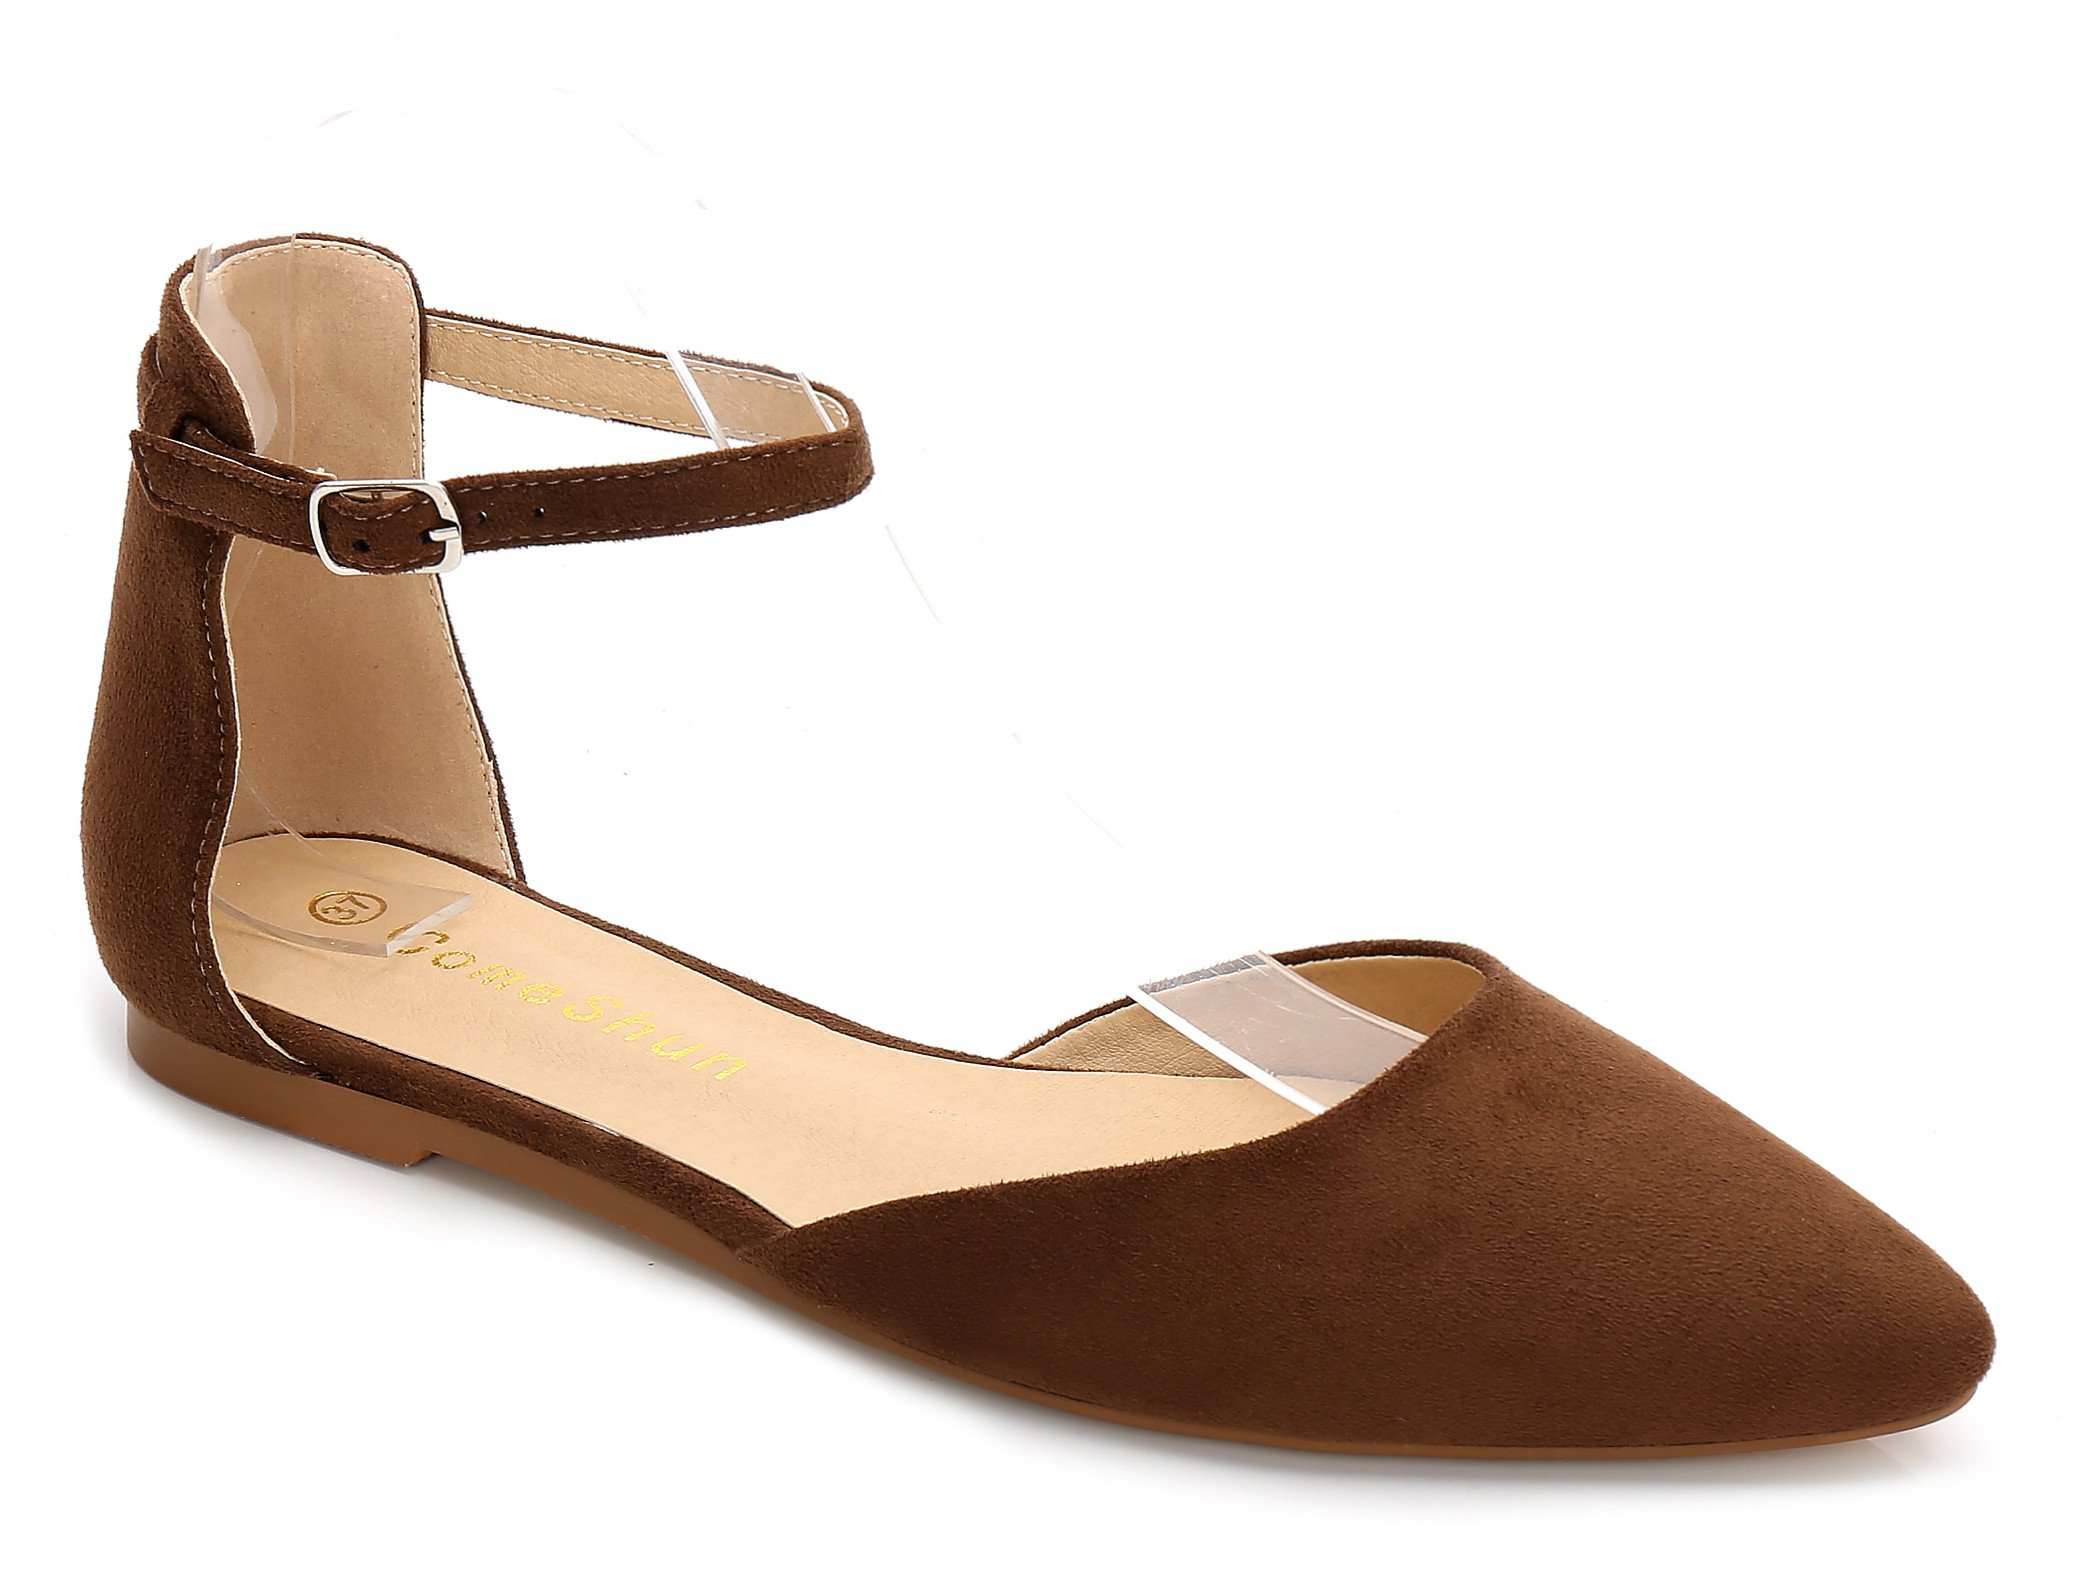 ComeShun Brown Womens Comfort D'Orsay Adjustable Buckle Slip On Flats Dress Pumps Shoes Size 10